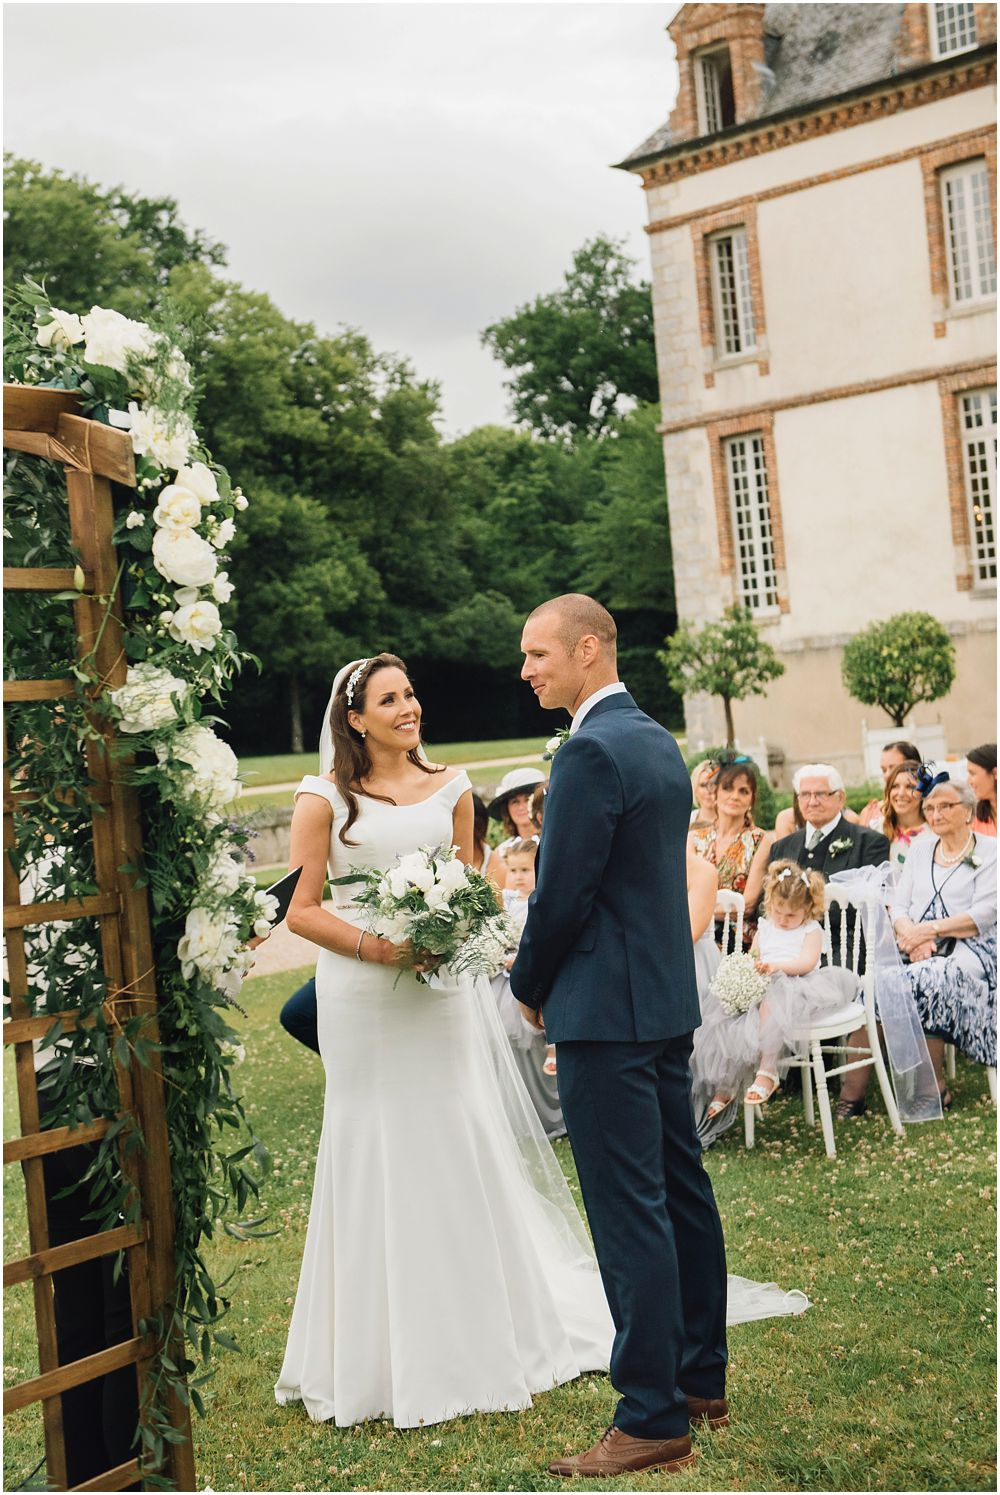 French_Chateau_Wedding_photography©011.jpg